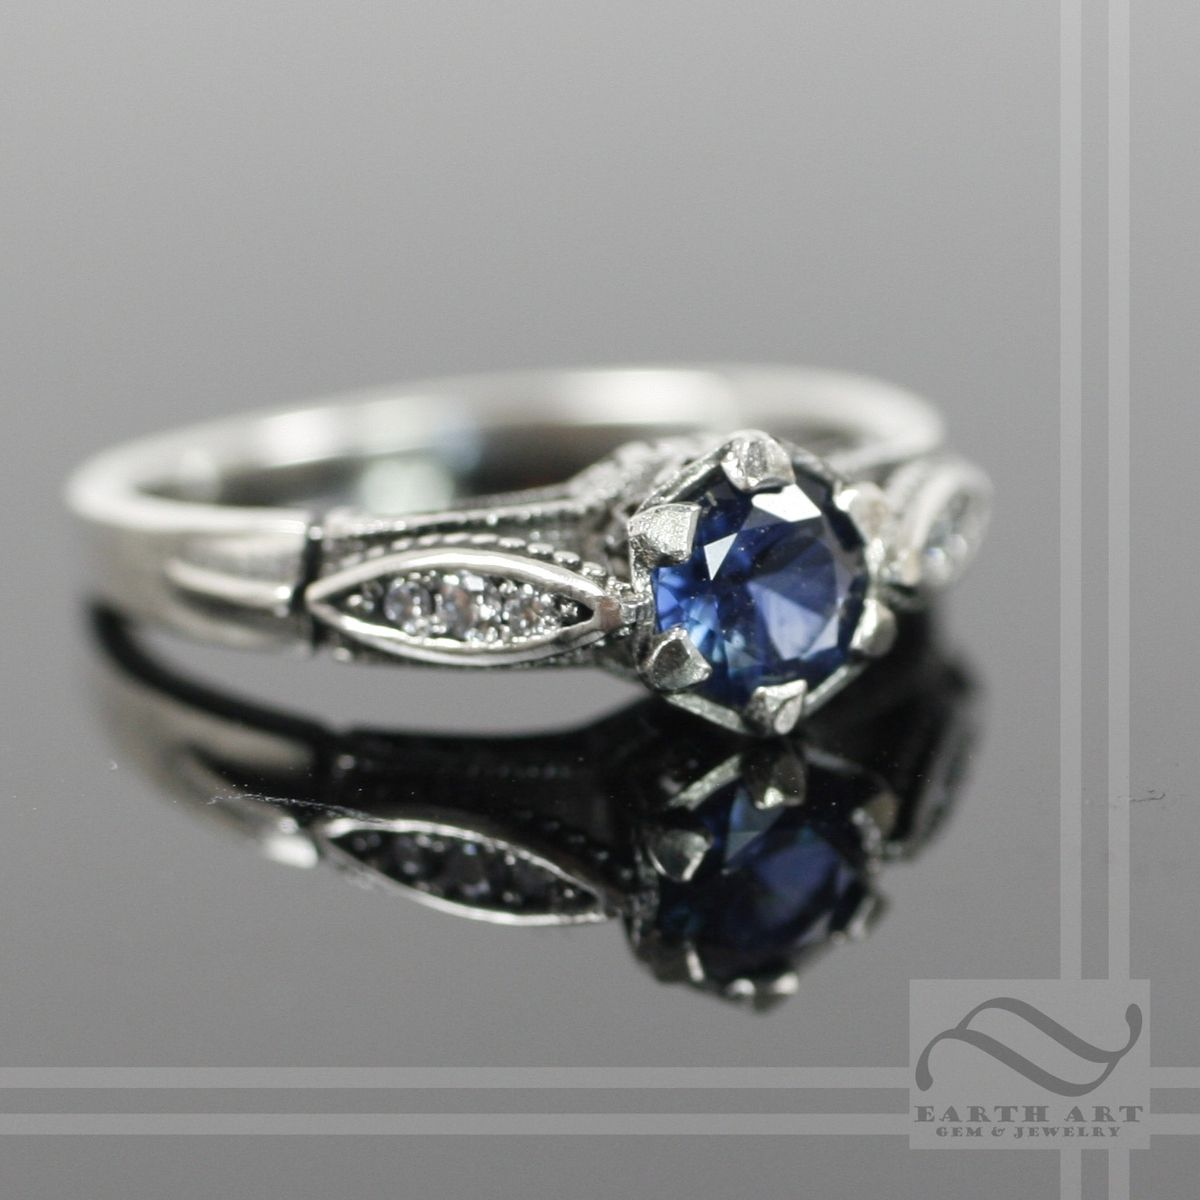 Buy A Hand Crafted Vintage Style Sapphire And Diamond Ring Made To